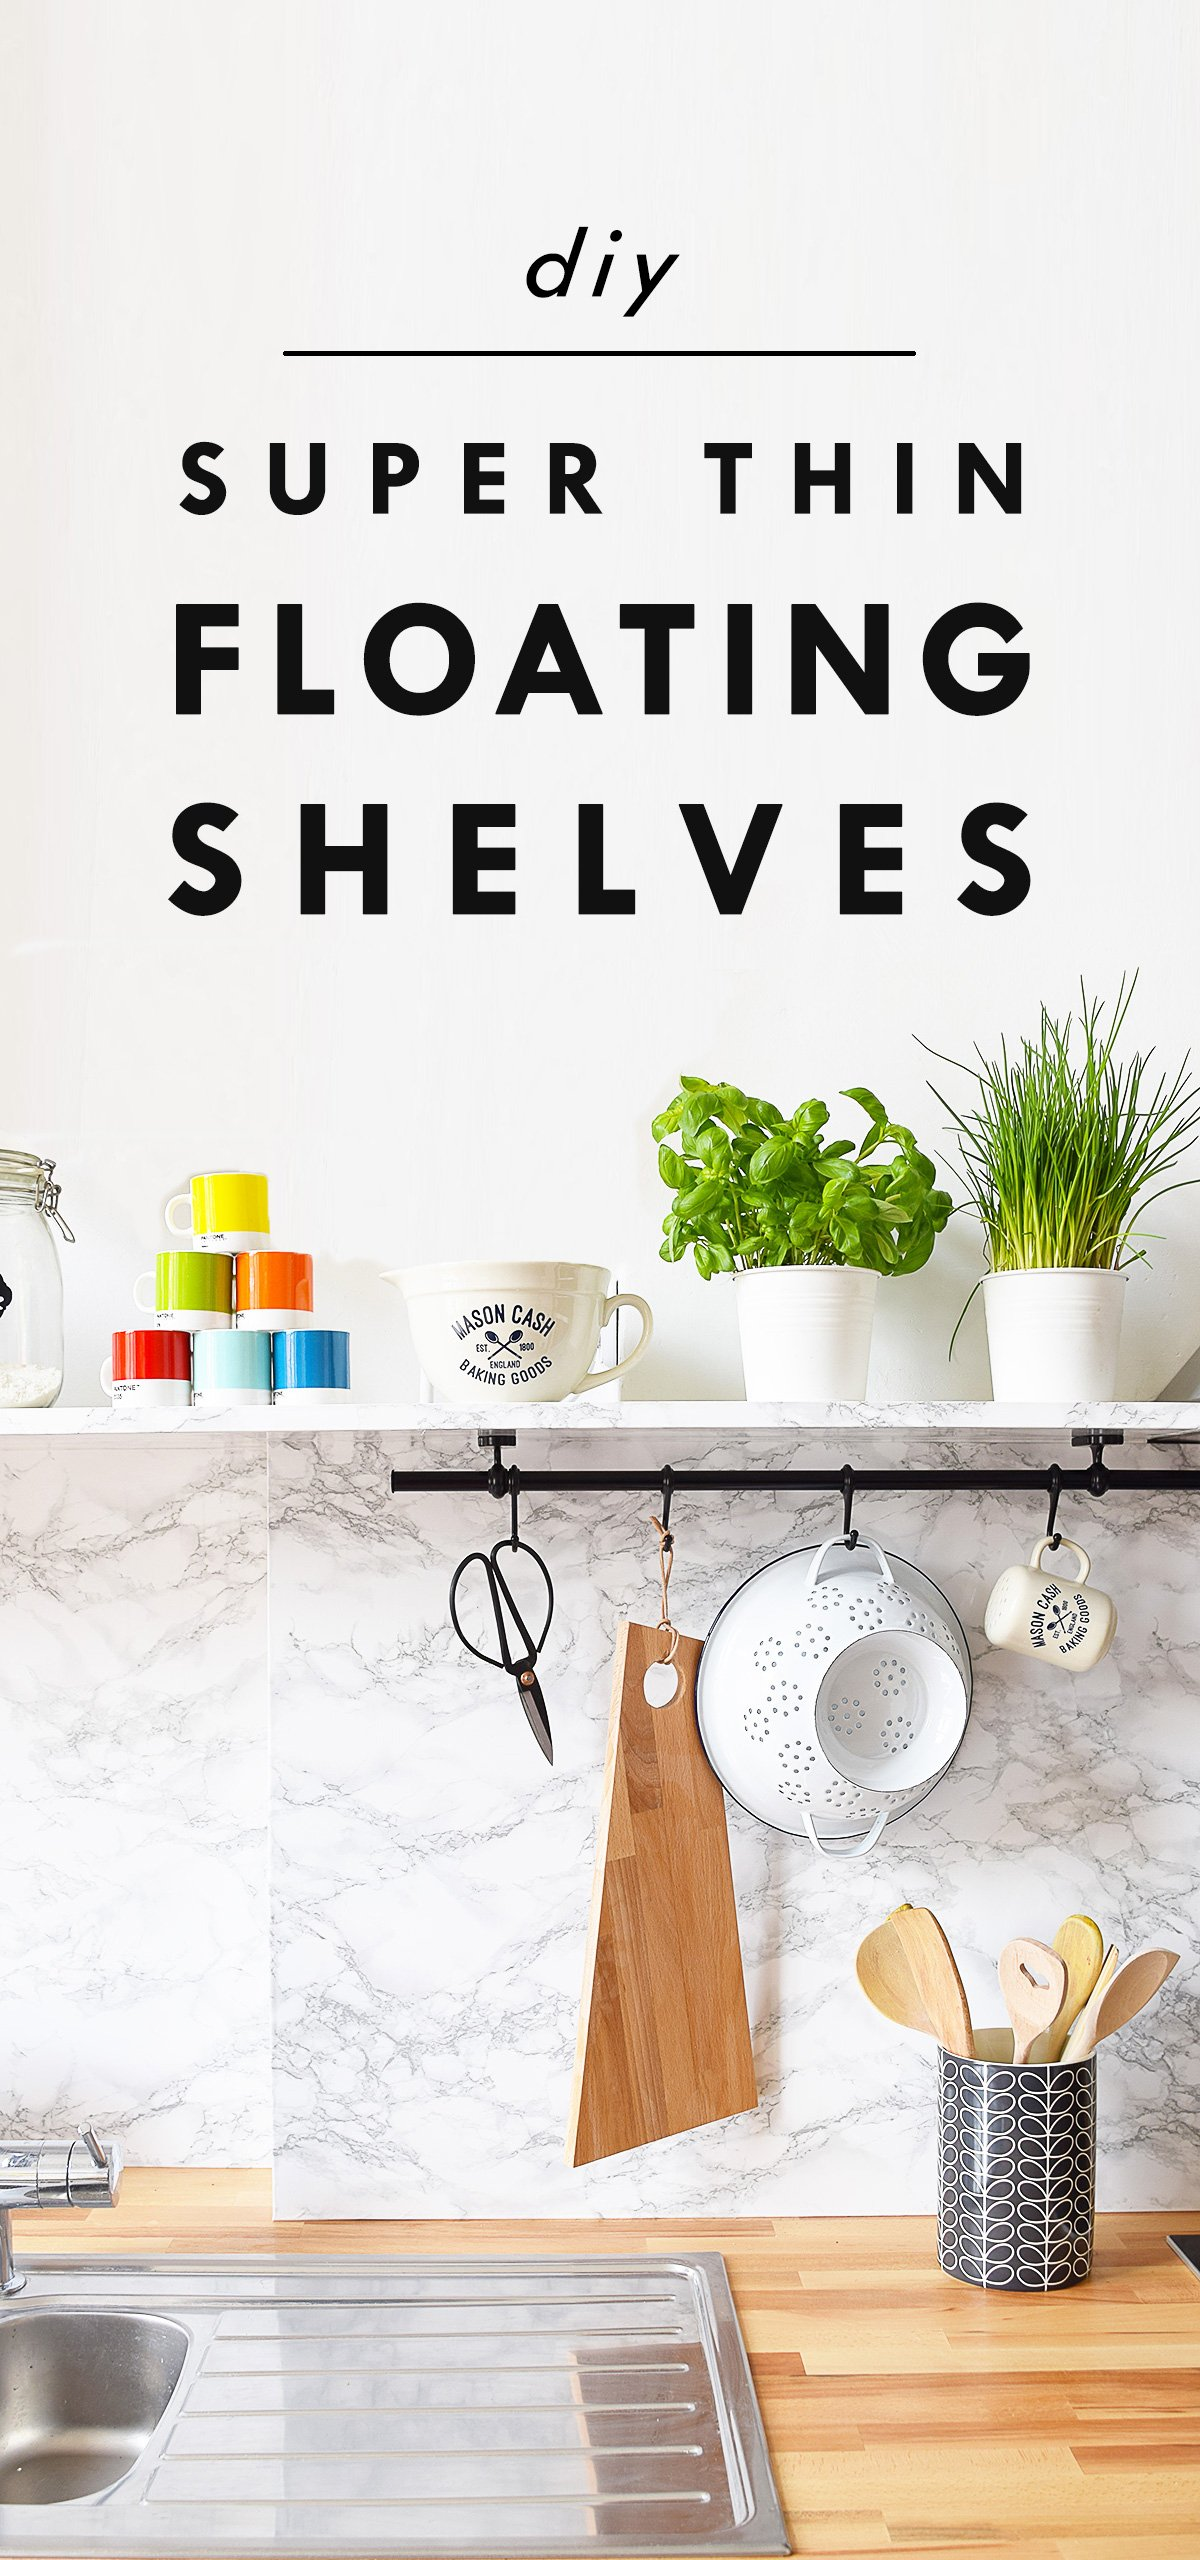 DIY Super Thin Floating Shelves | Little House On The Corner